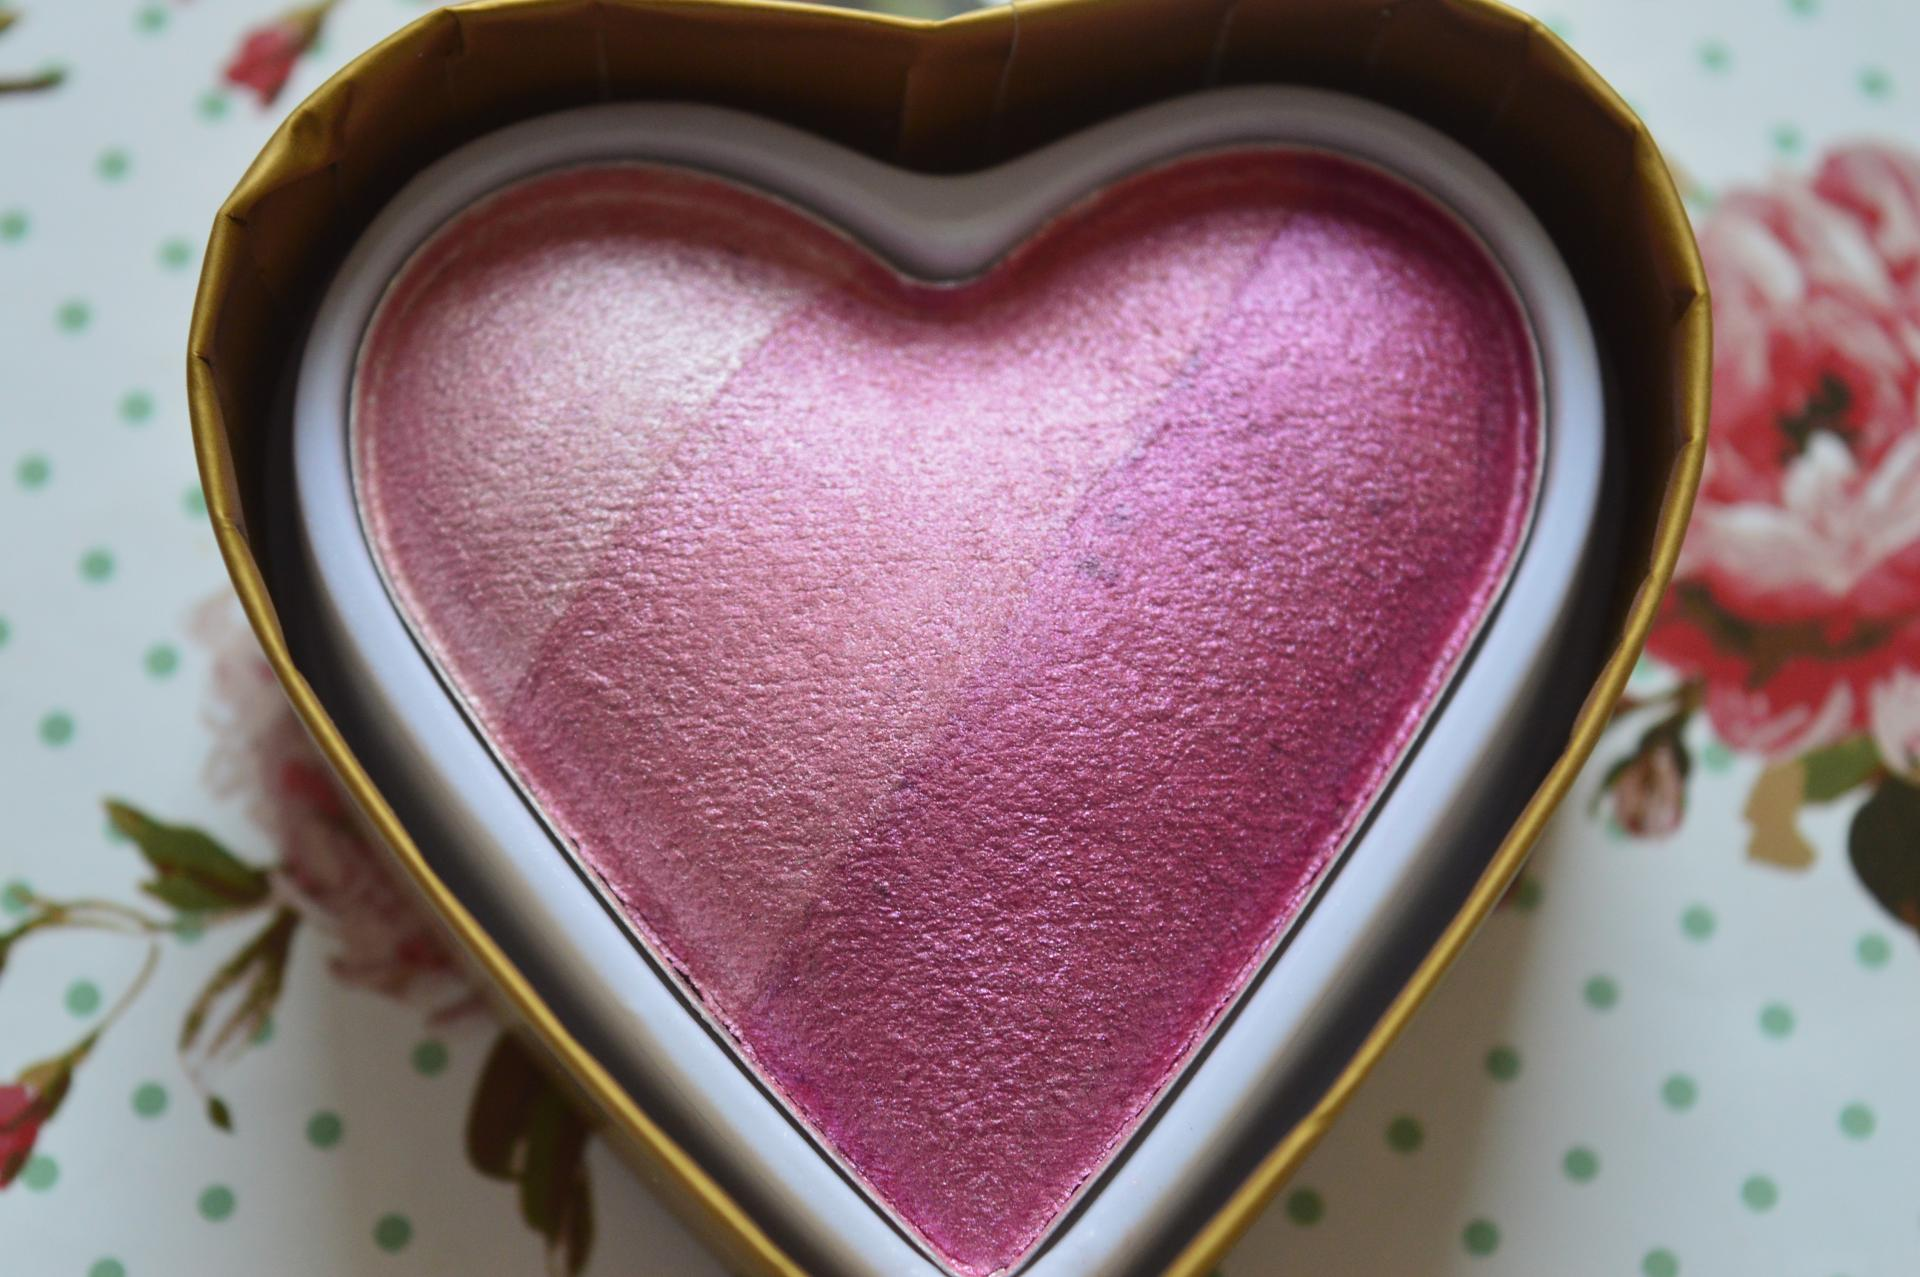 Technic Baked Hearts Blusher Review